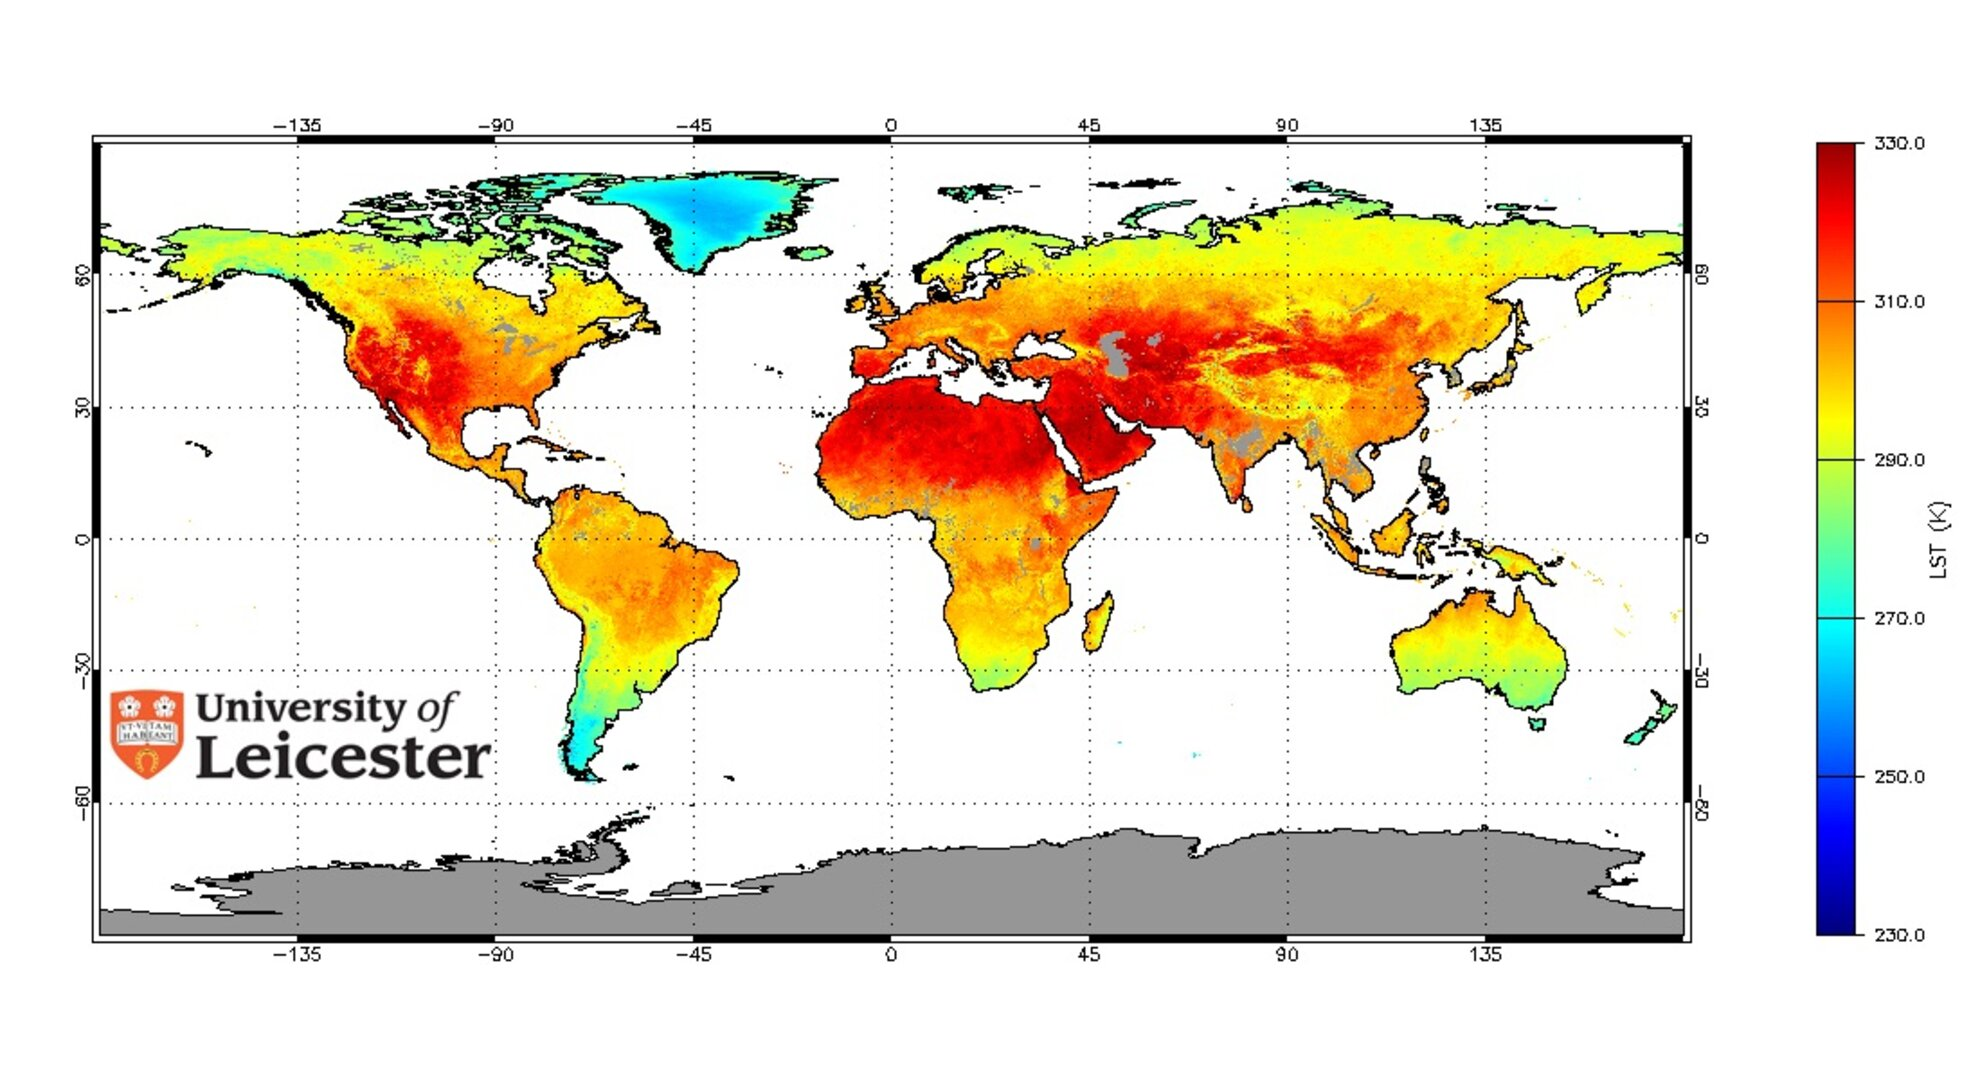 Land surface temperature